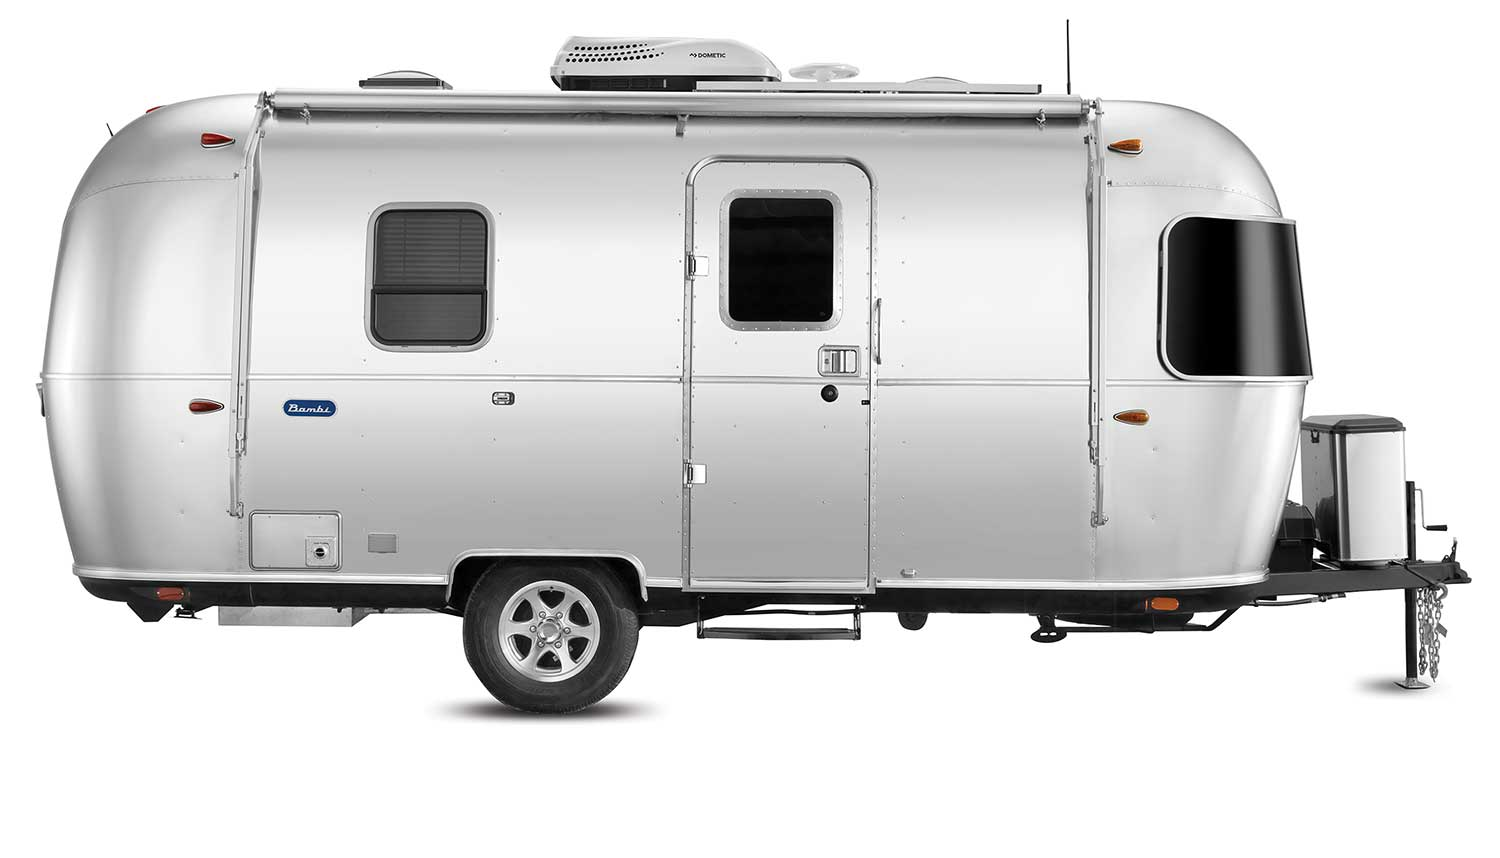 exterior side view of Airstream's new Bambi model.